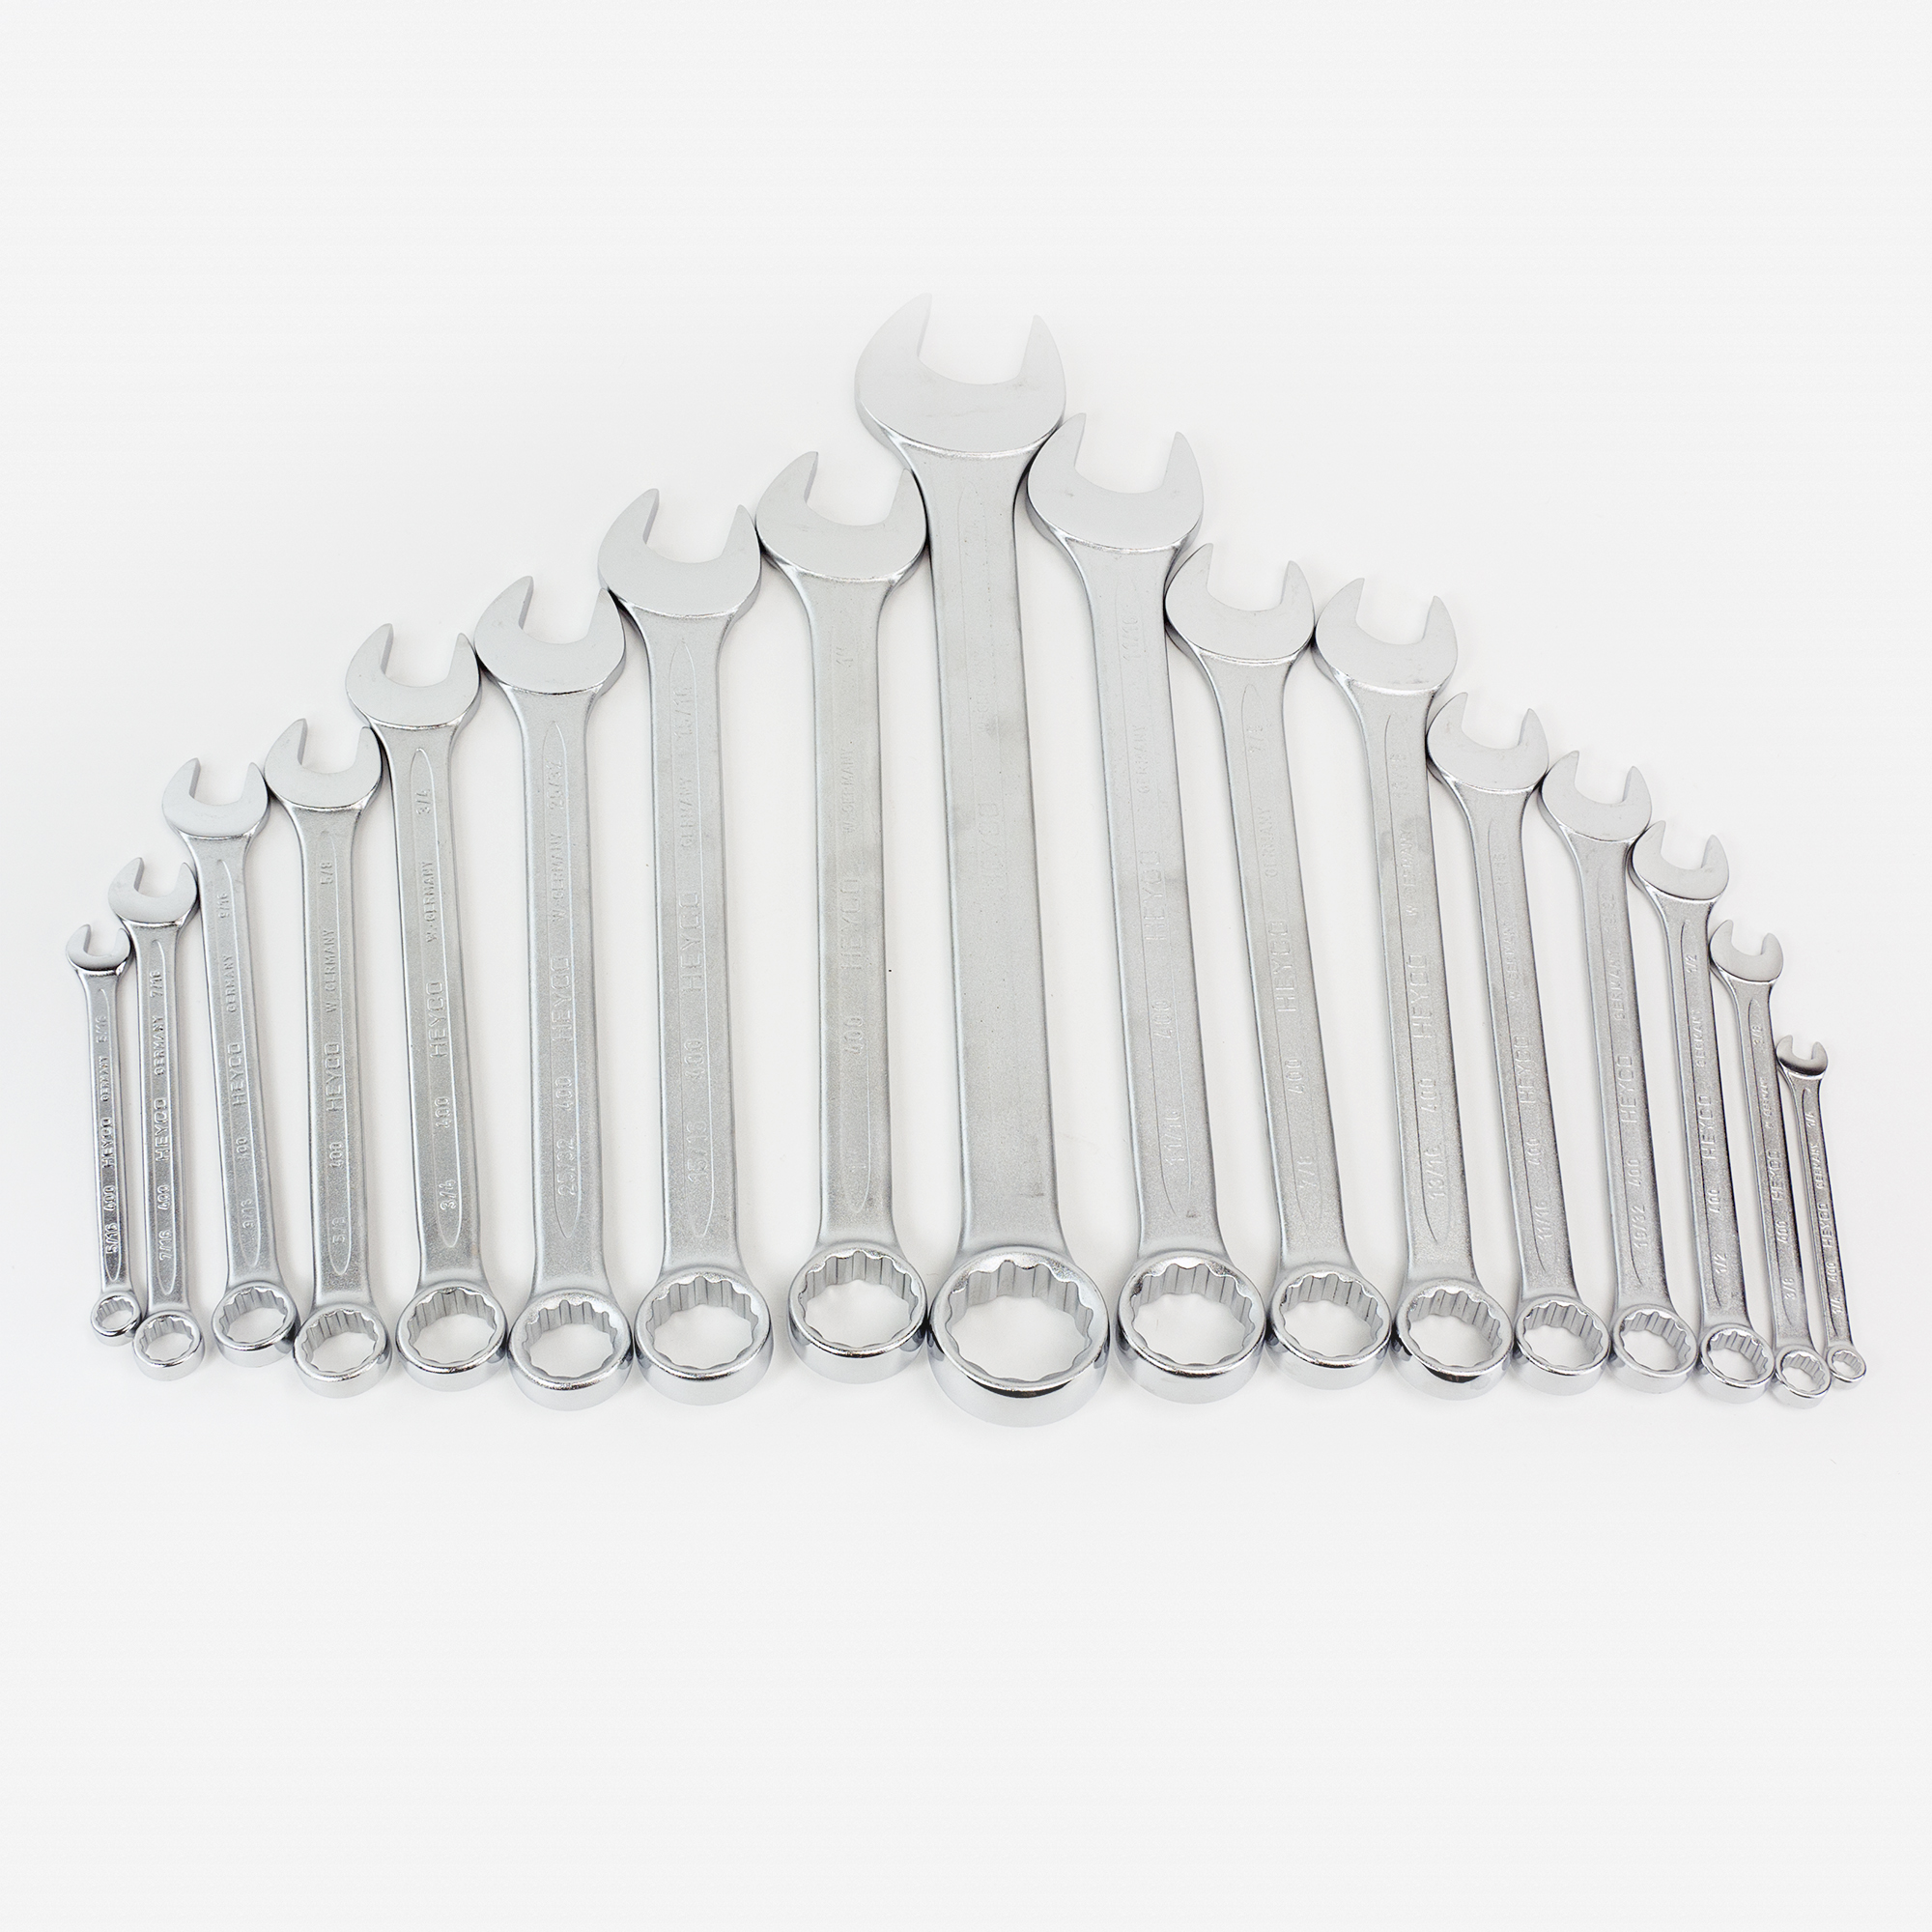 "Heyco 4009390 SAE 1/4 - 1 1/4"" Combination Wrench Set, 16 Pieces - KC Tool"